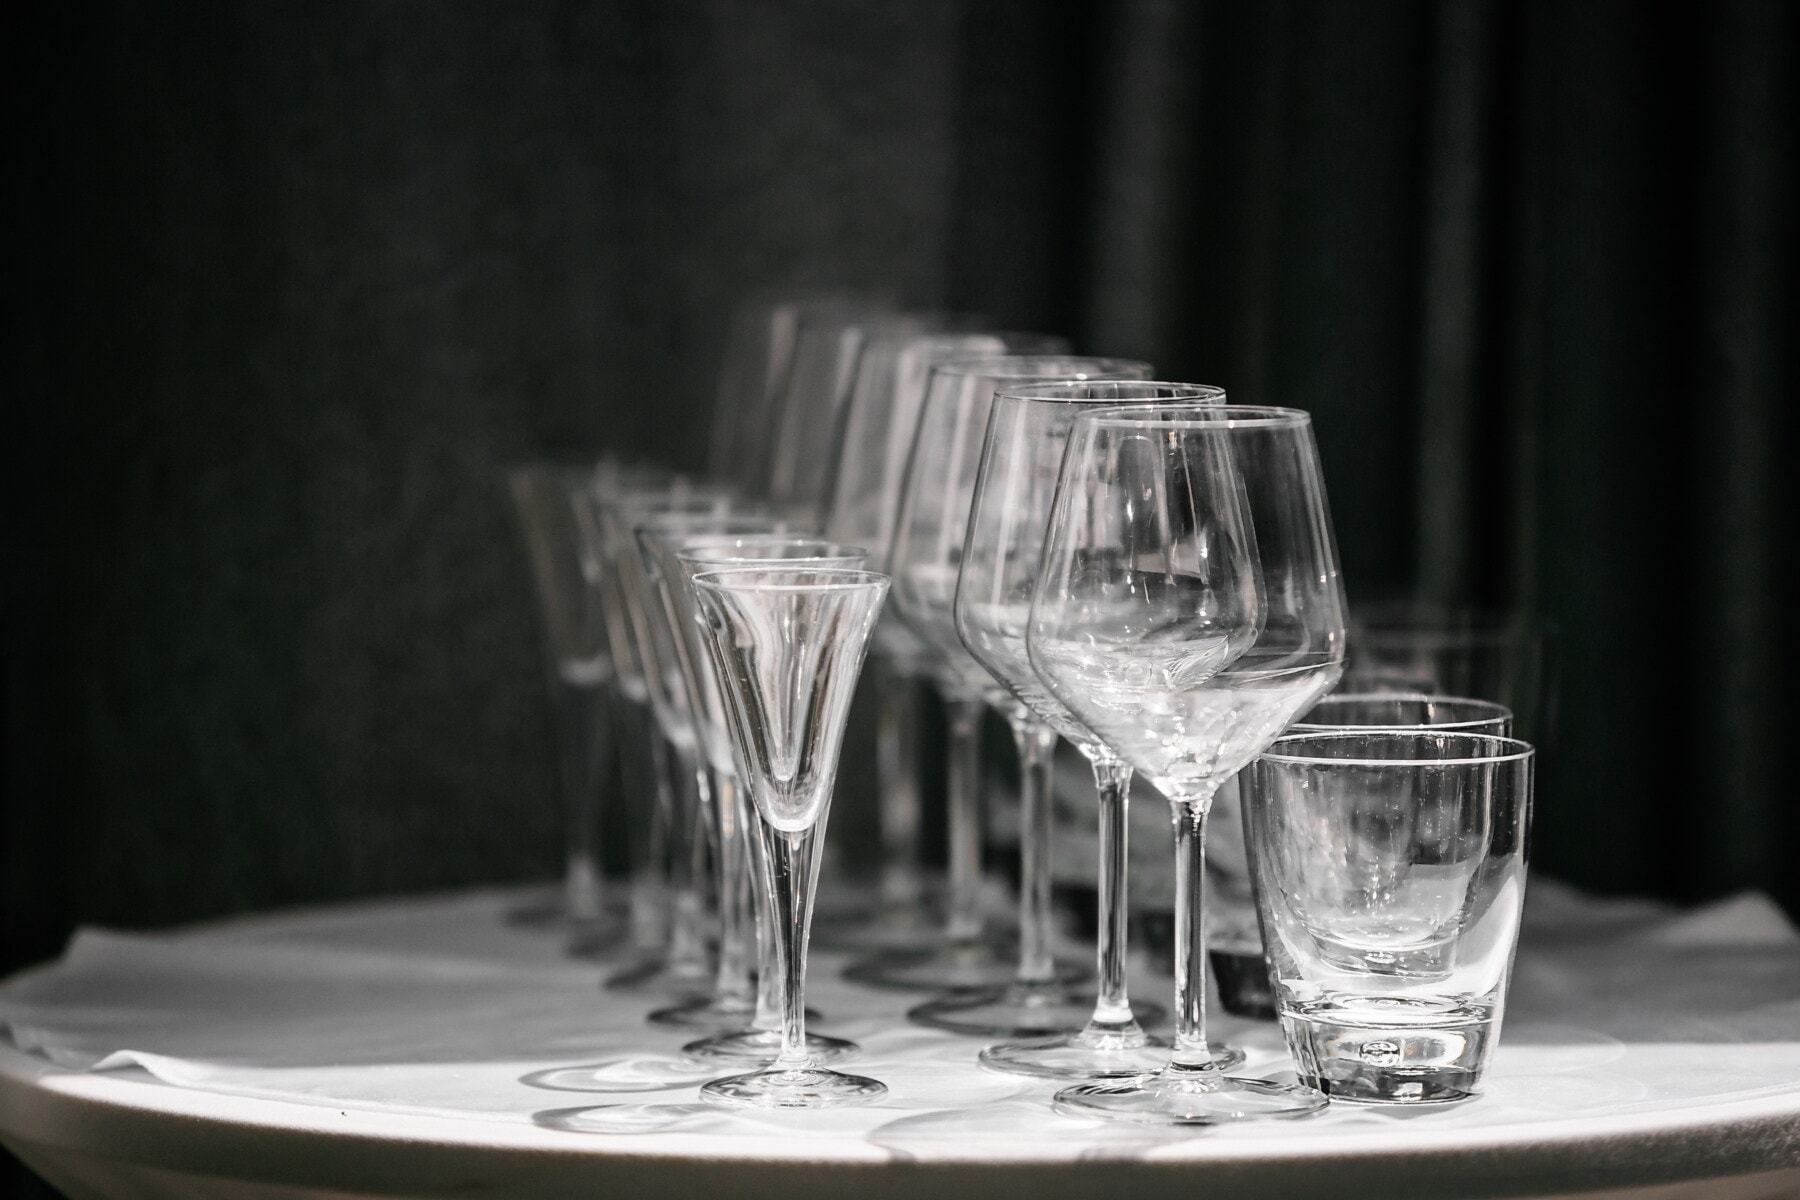 monochrome, crystal, glass, glassware, party, glasses, drink, container, tableware, restaurant